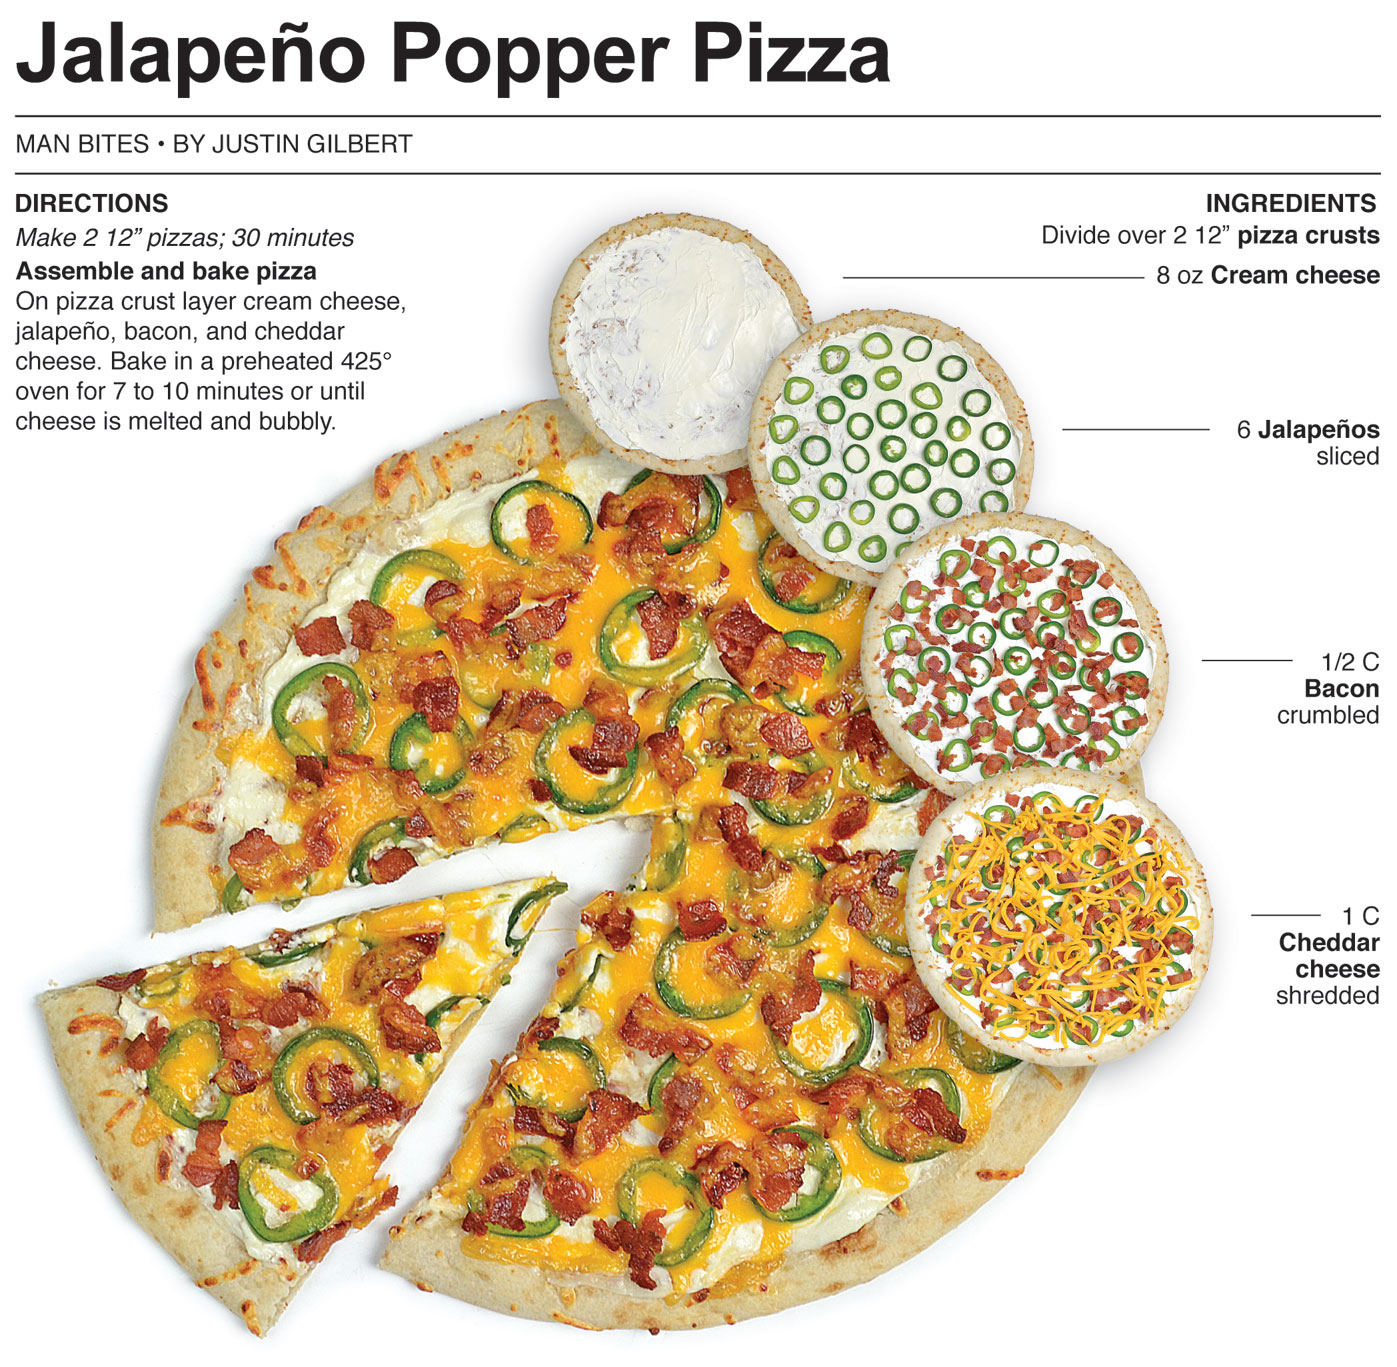 Behind the Bites: Jalapeño Popper Pizza